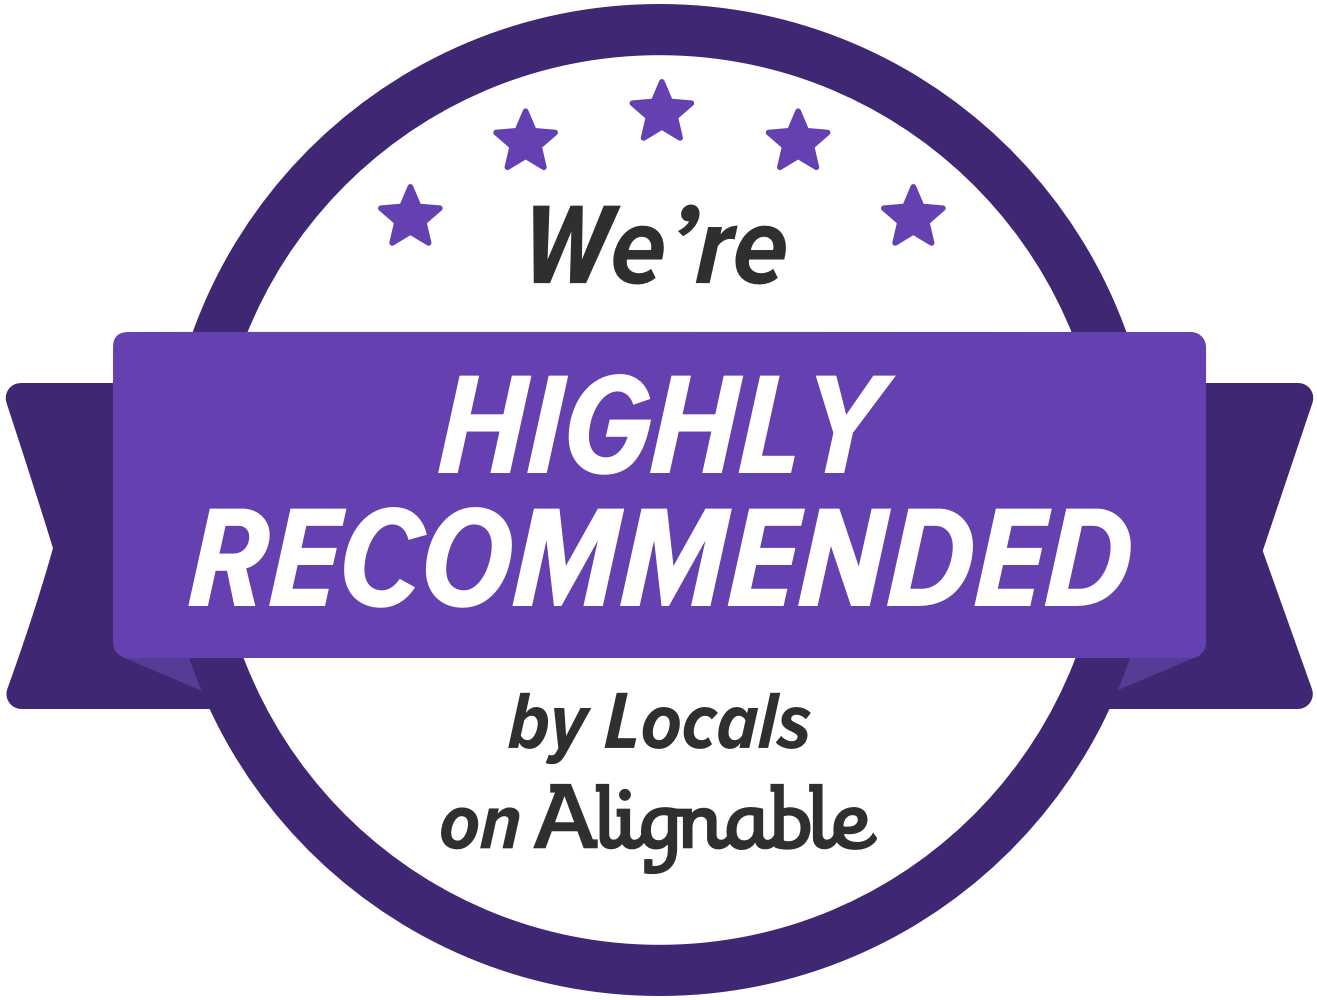 Alignable Highly Recommended Business Badge